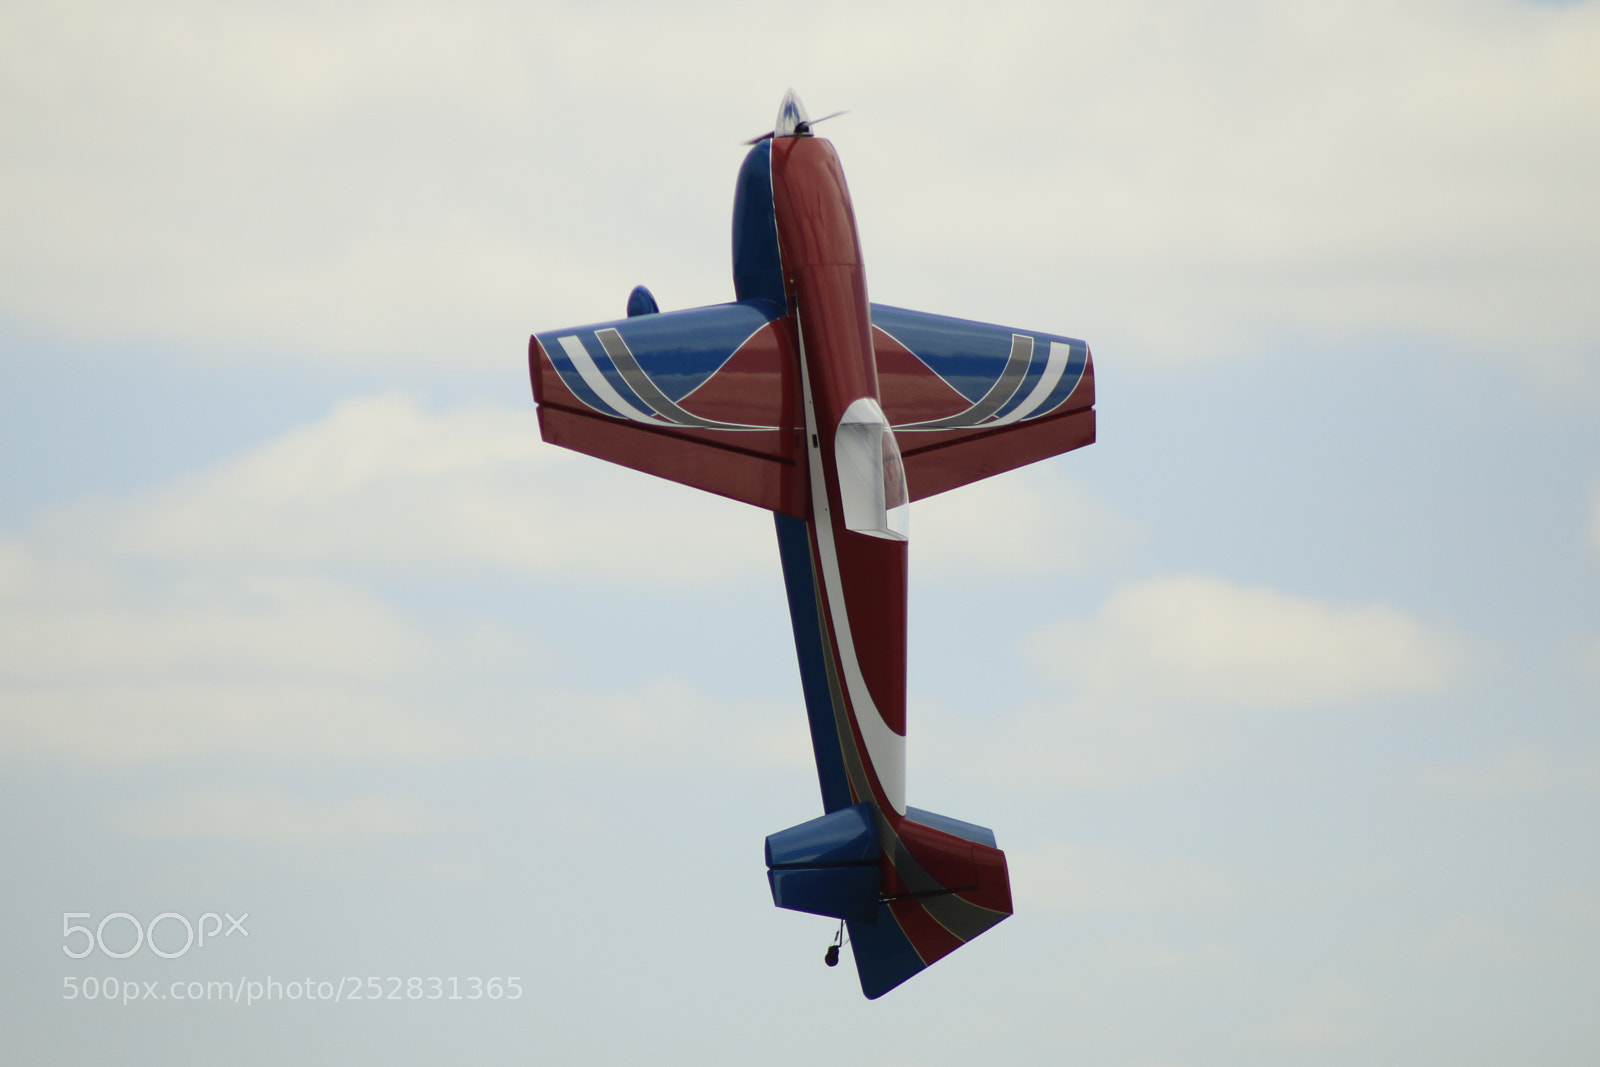 The RC Plane, Going, Canon EOS 70D, Tamron AF 70-300mm f/4-5.6 Di LD 1:2 Macro